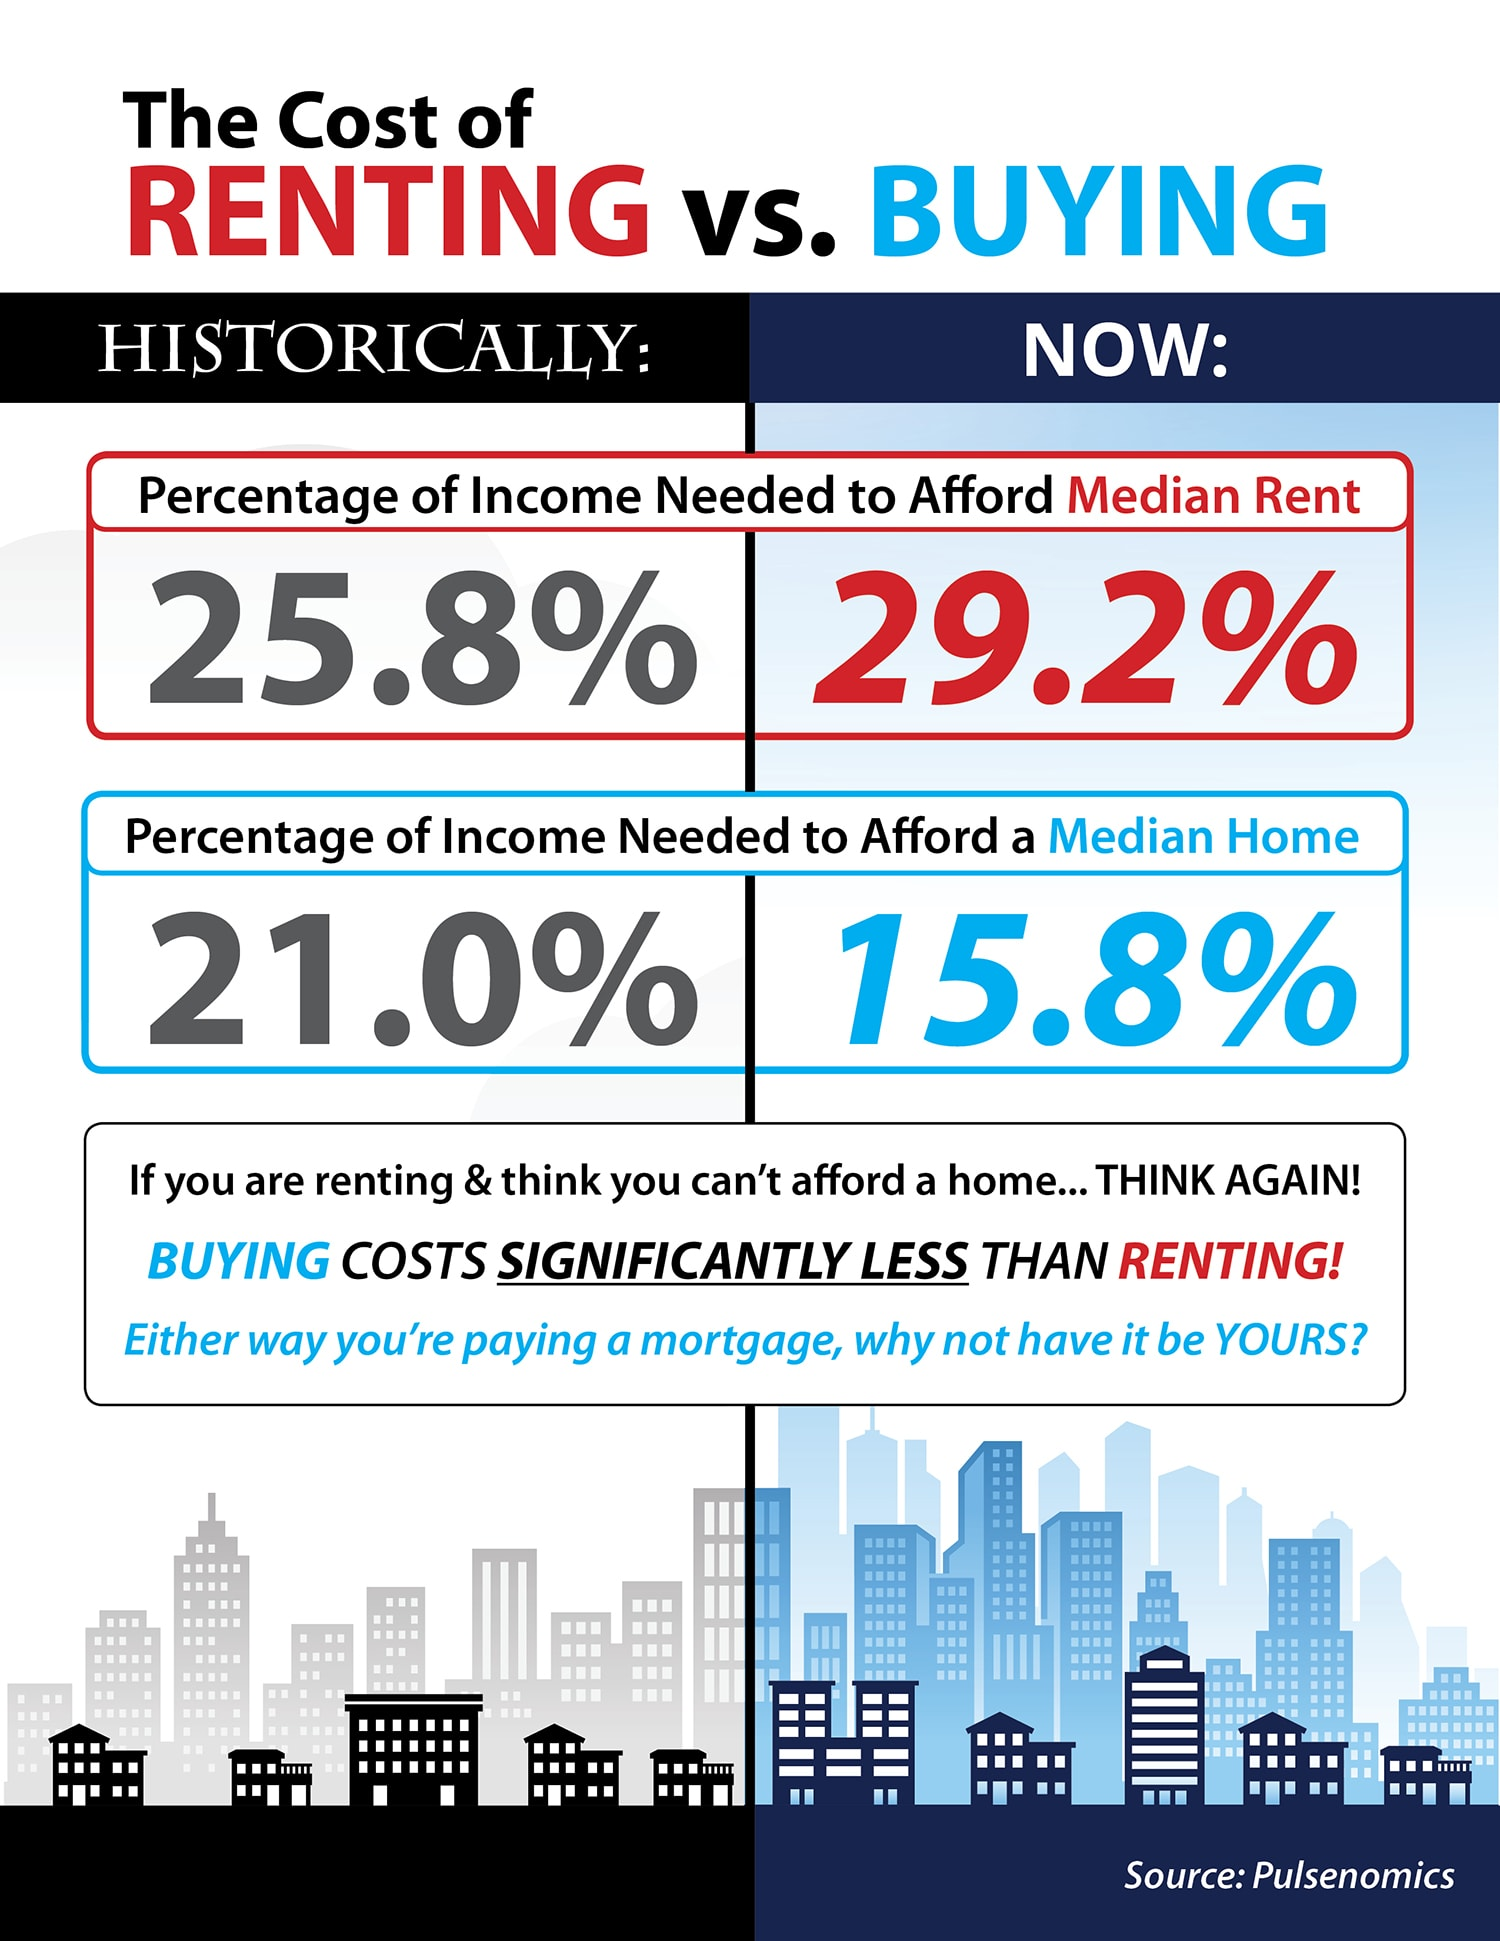 Buying right now costs significantly less than renting.